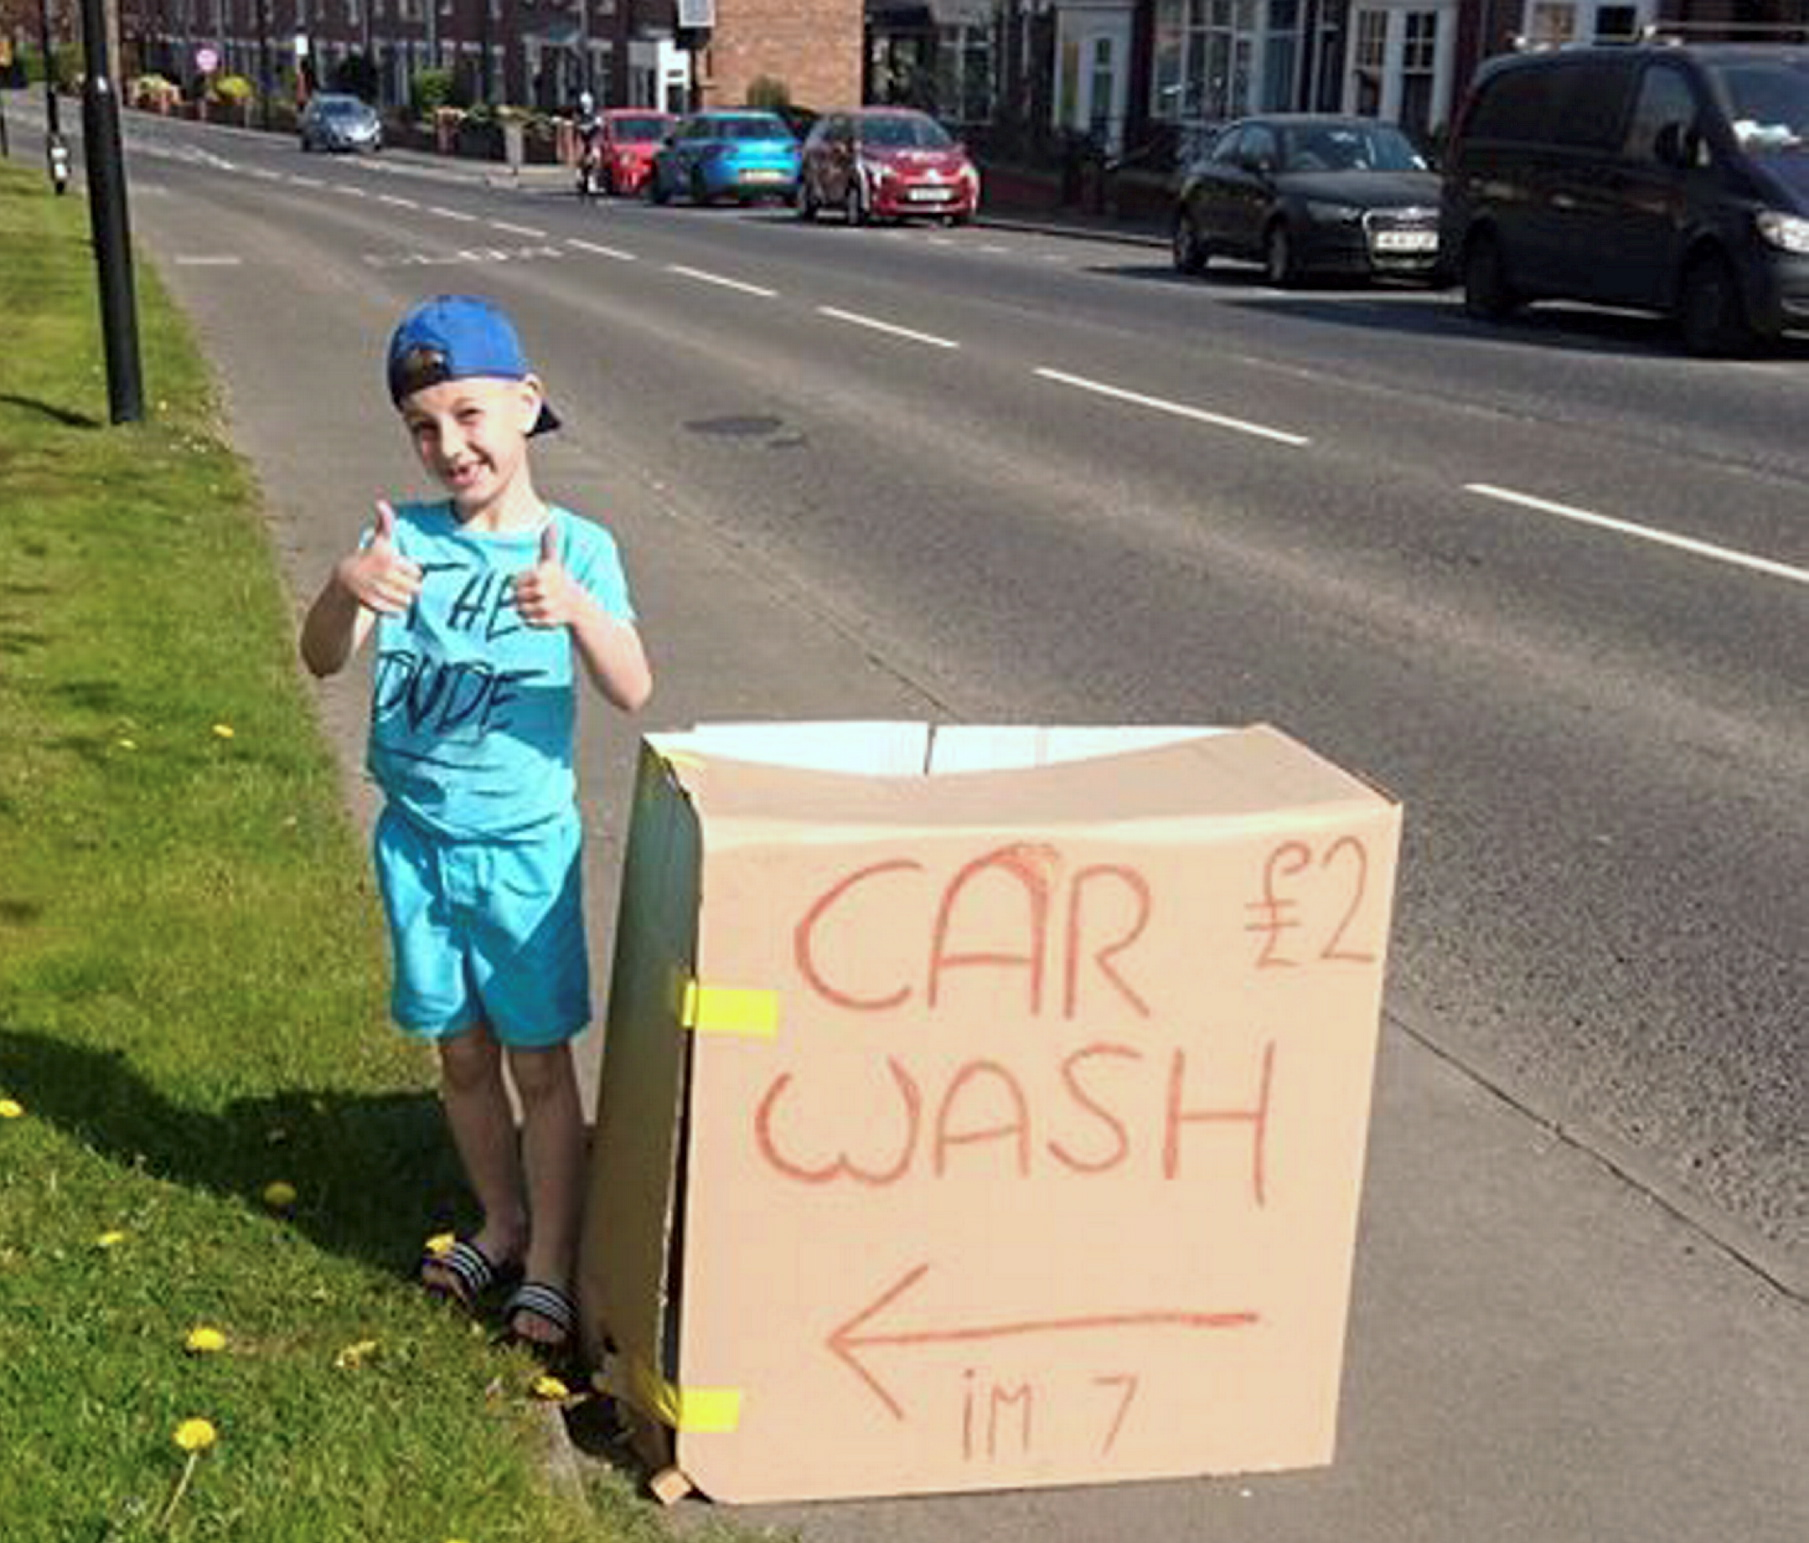 The little boy set up his own car wash to raise money for flowers for his nan's funeral. Credit: North News